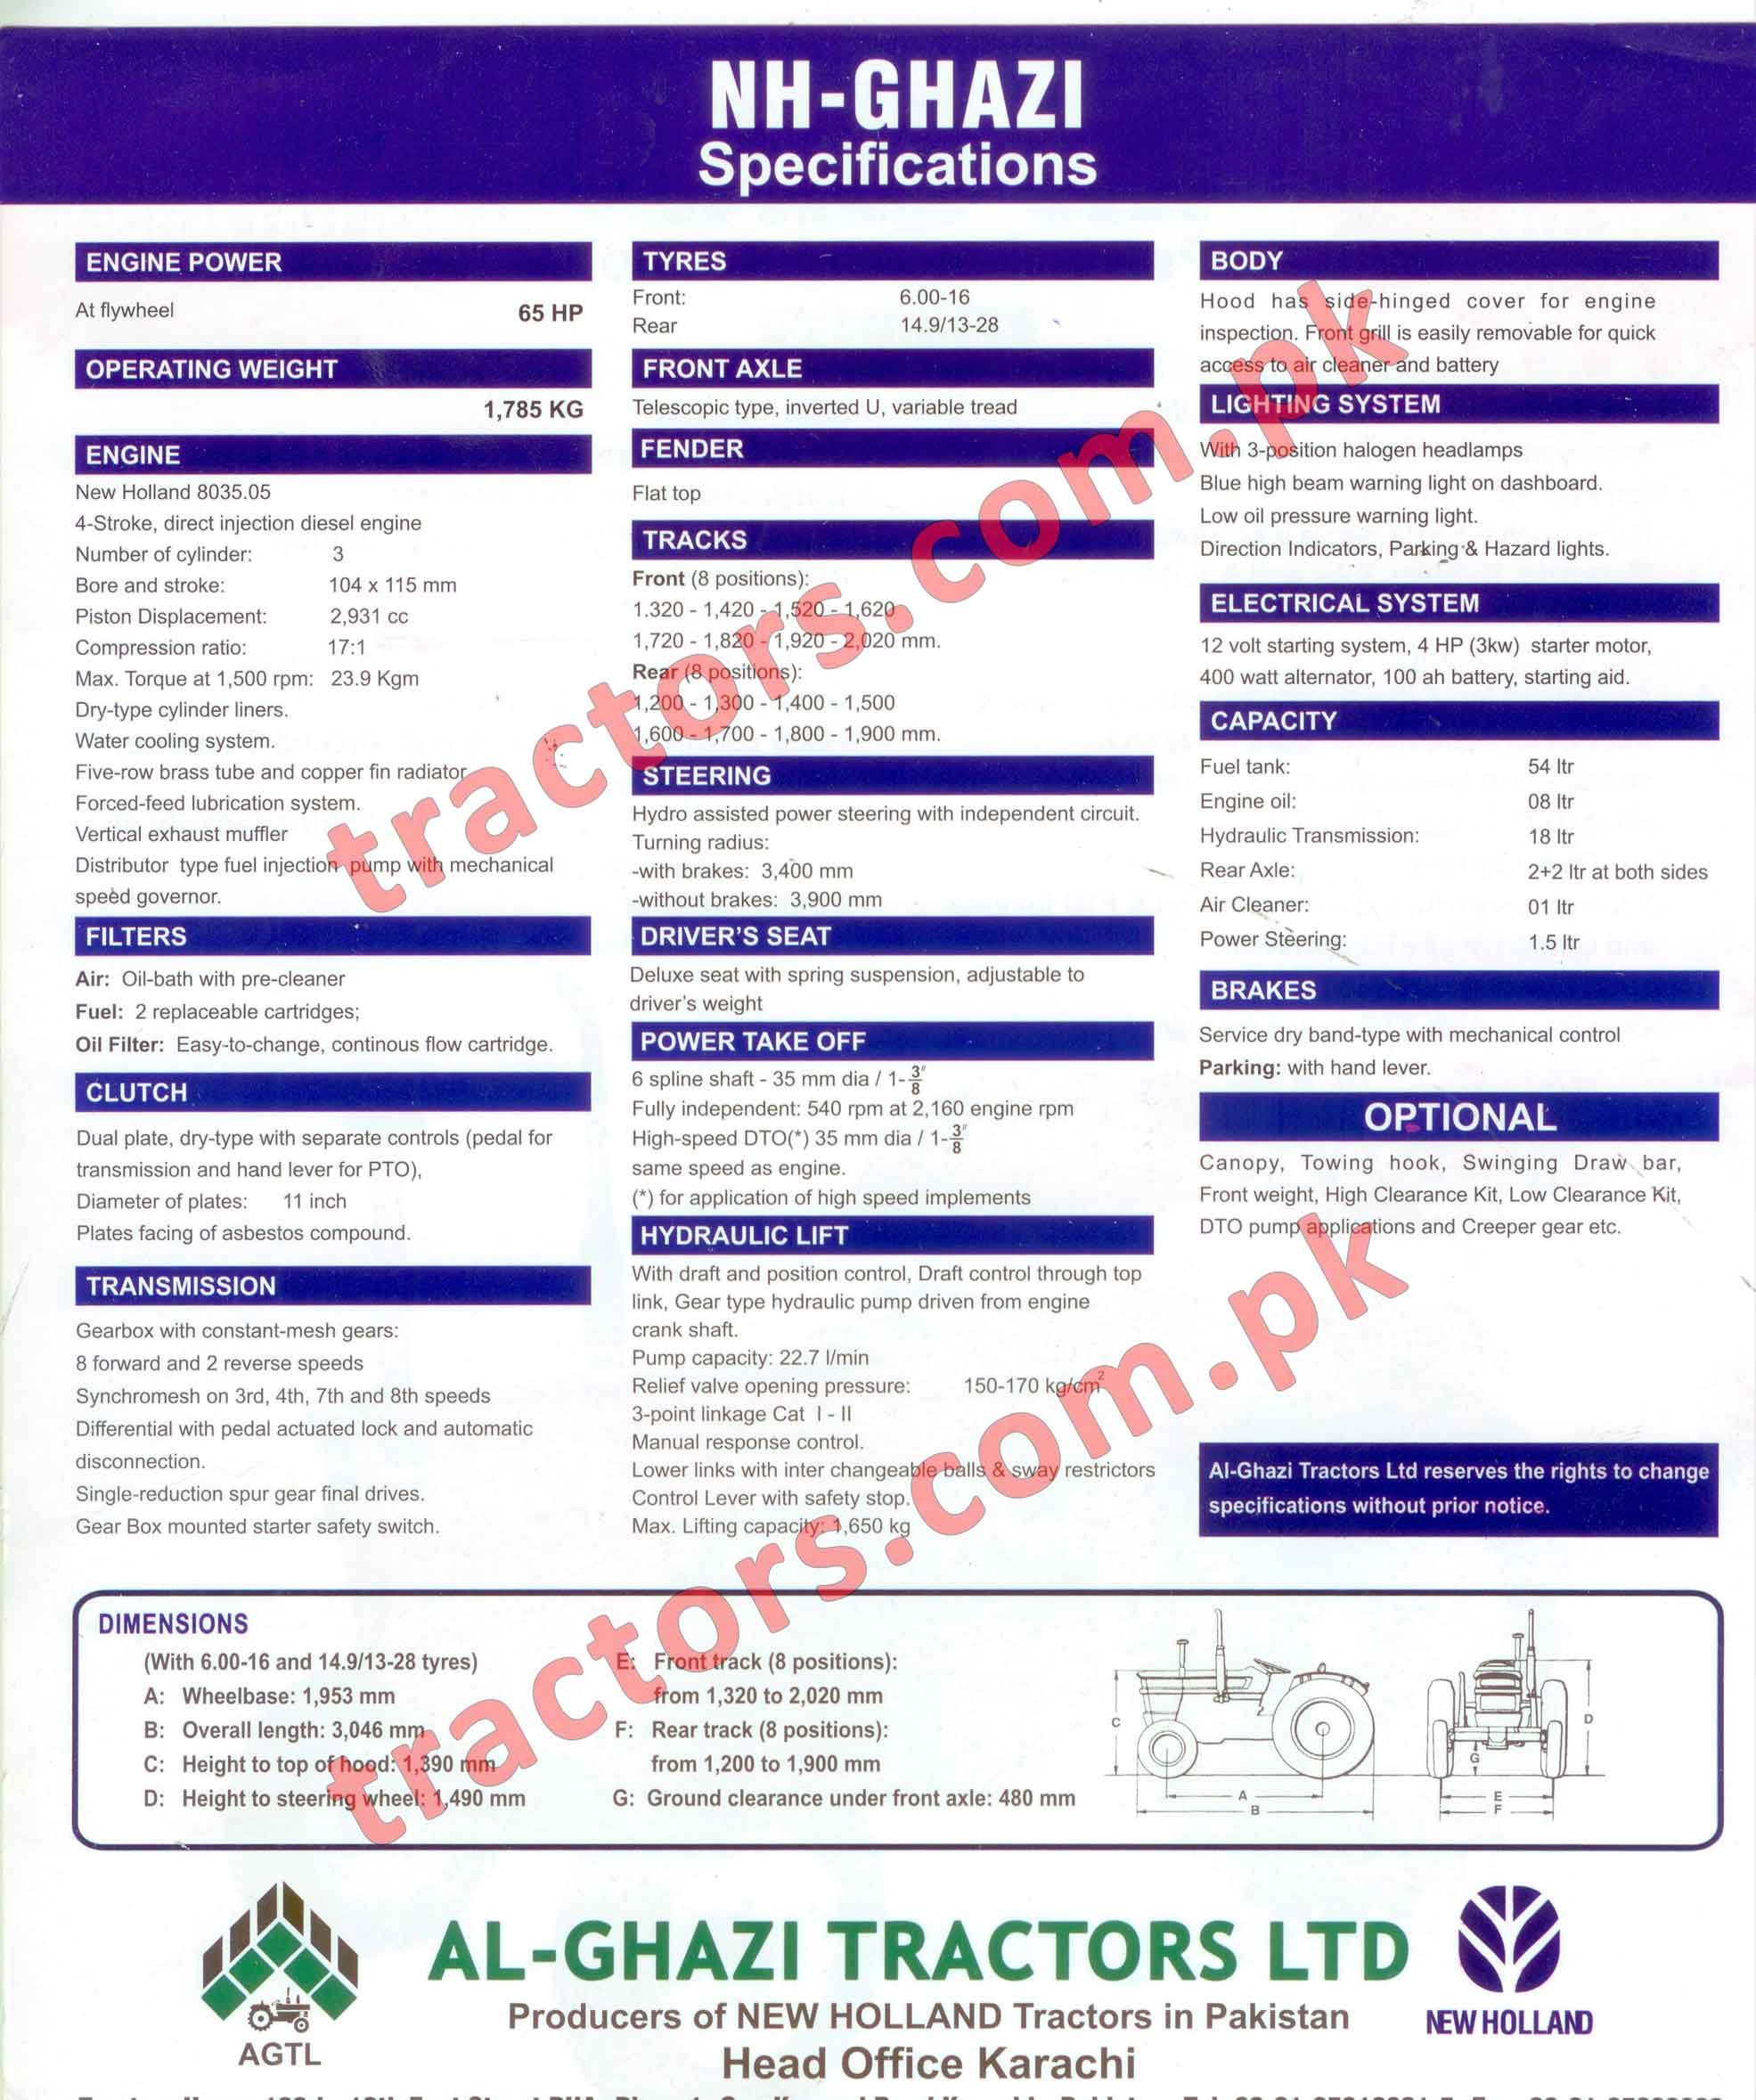 NH Ghazi Tractor 65HP Specifications 2018